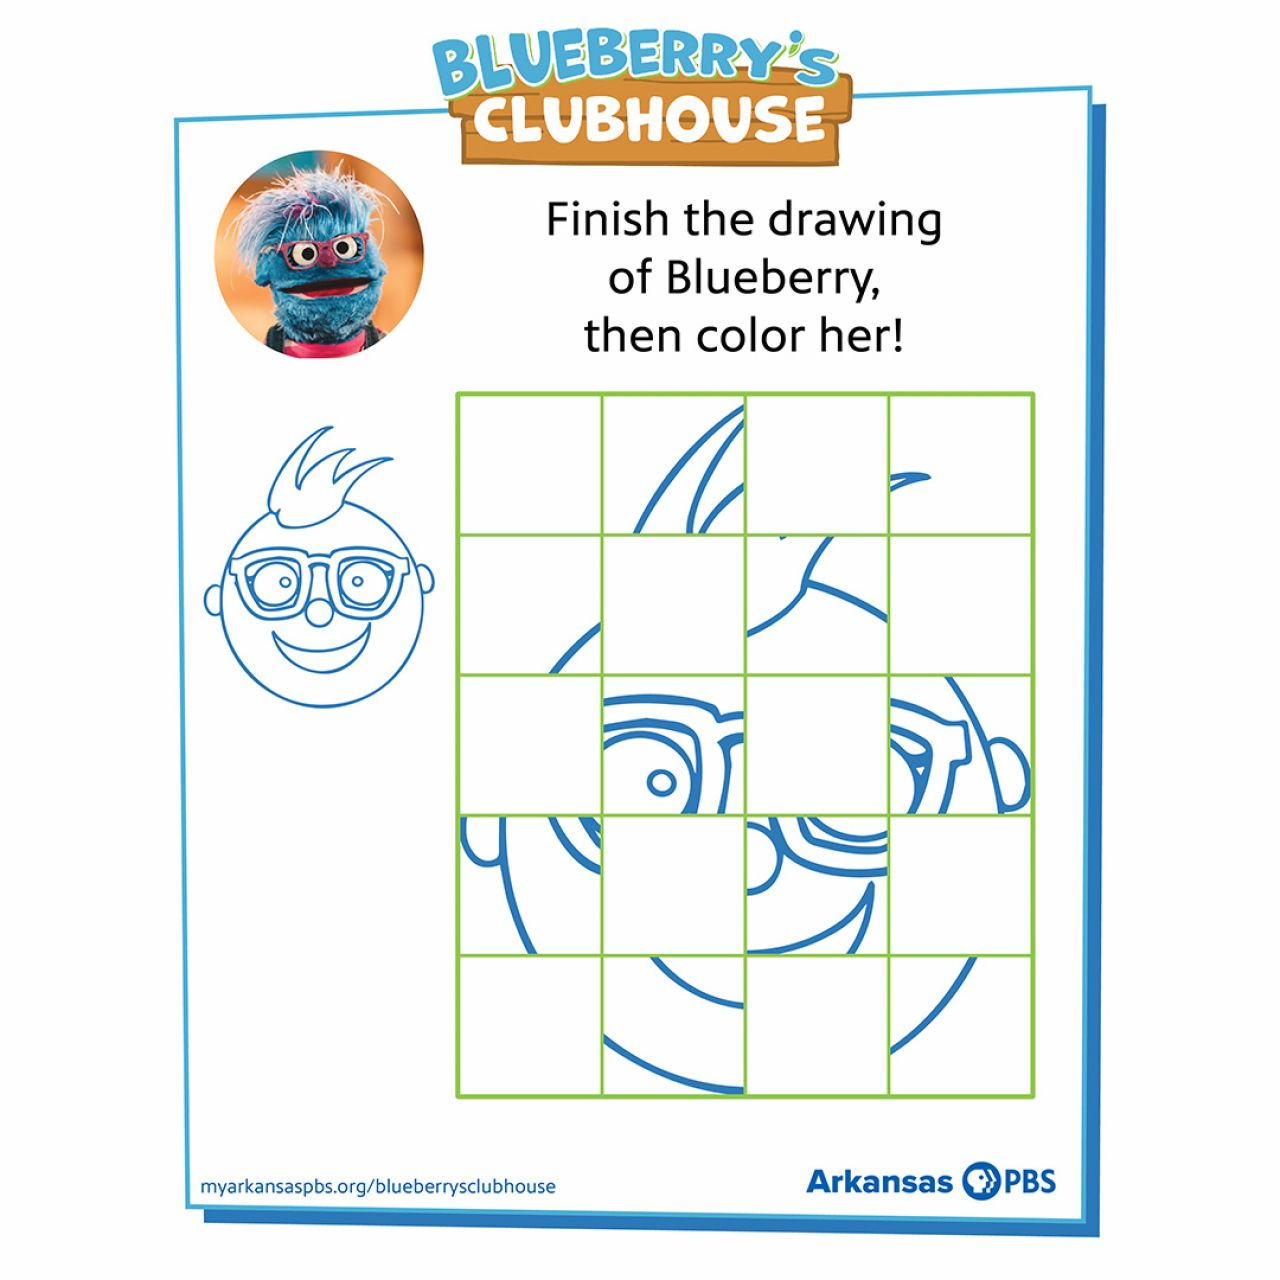 Partially completed grid drawing of Blueberry's head inside blue frame with Blueberry's Clubhouse logo at top center, instructions in the margin and Blueberry's Clubhouse website and AR PBS Logo at base